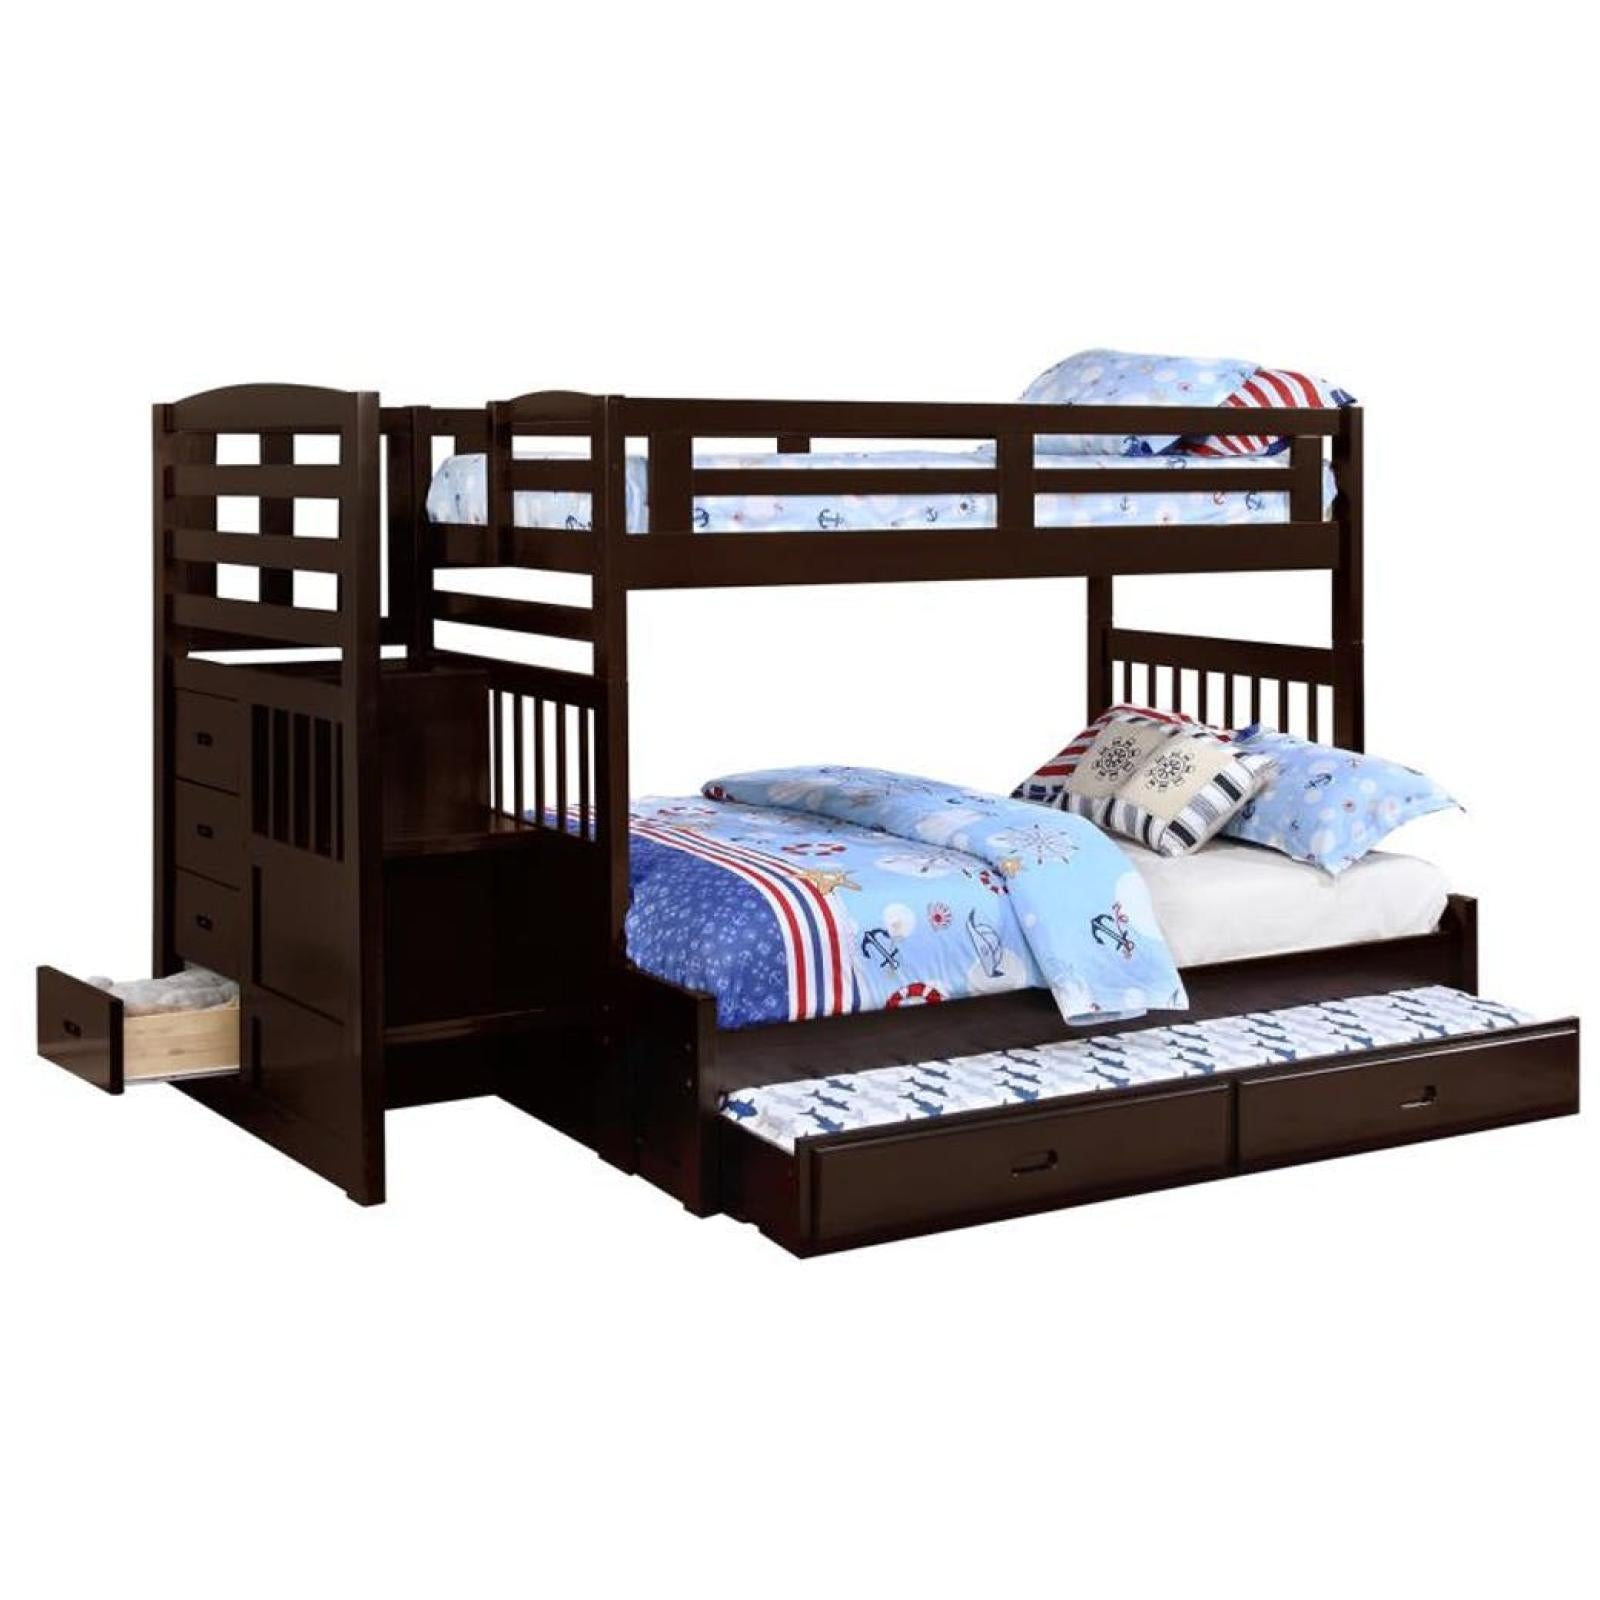 Dublin Twinfull Bunk Bed With Staircase & Trundle